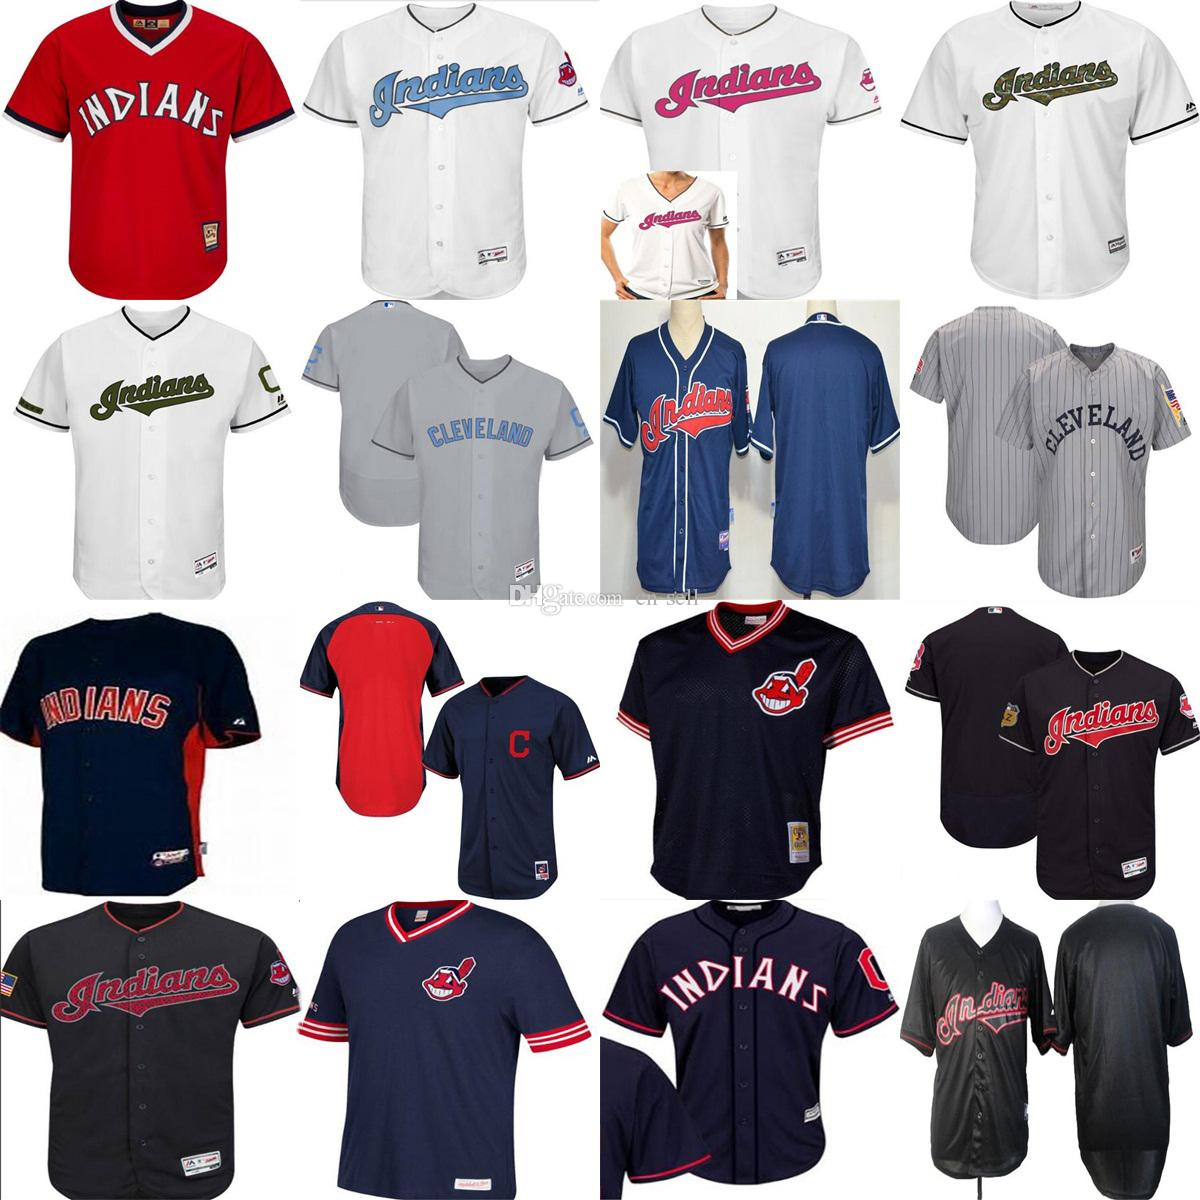 7f31d6e7d ... White 2017 Cleveland Indians 2017 Mens Lady Kids Customized 1986  Vintage Father Mother Memorial Fashion StarsStripes Cool Customized Jerseys  ...